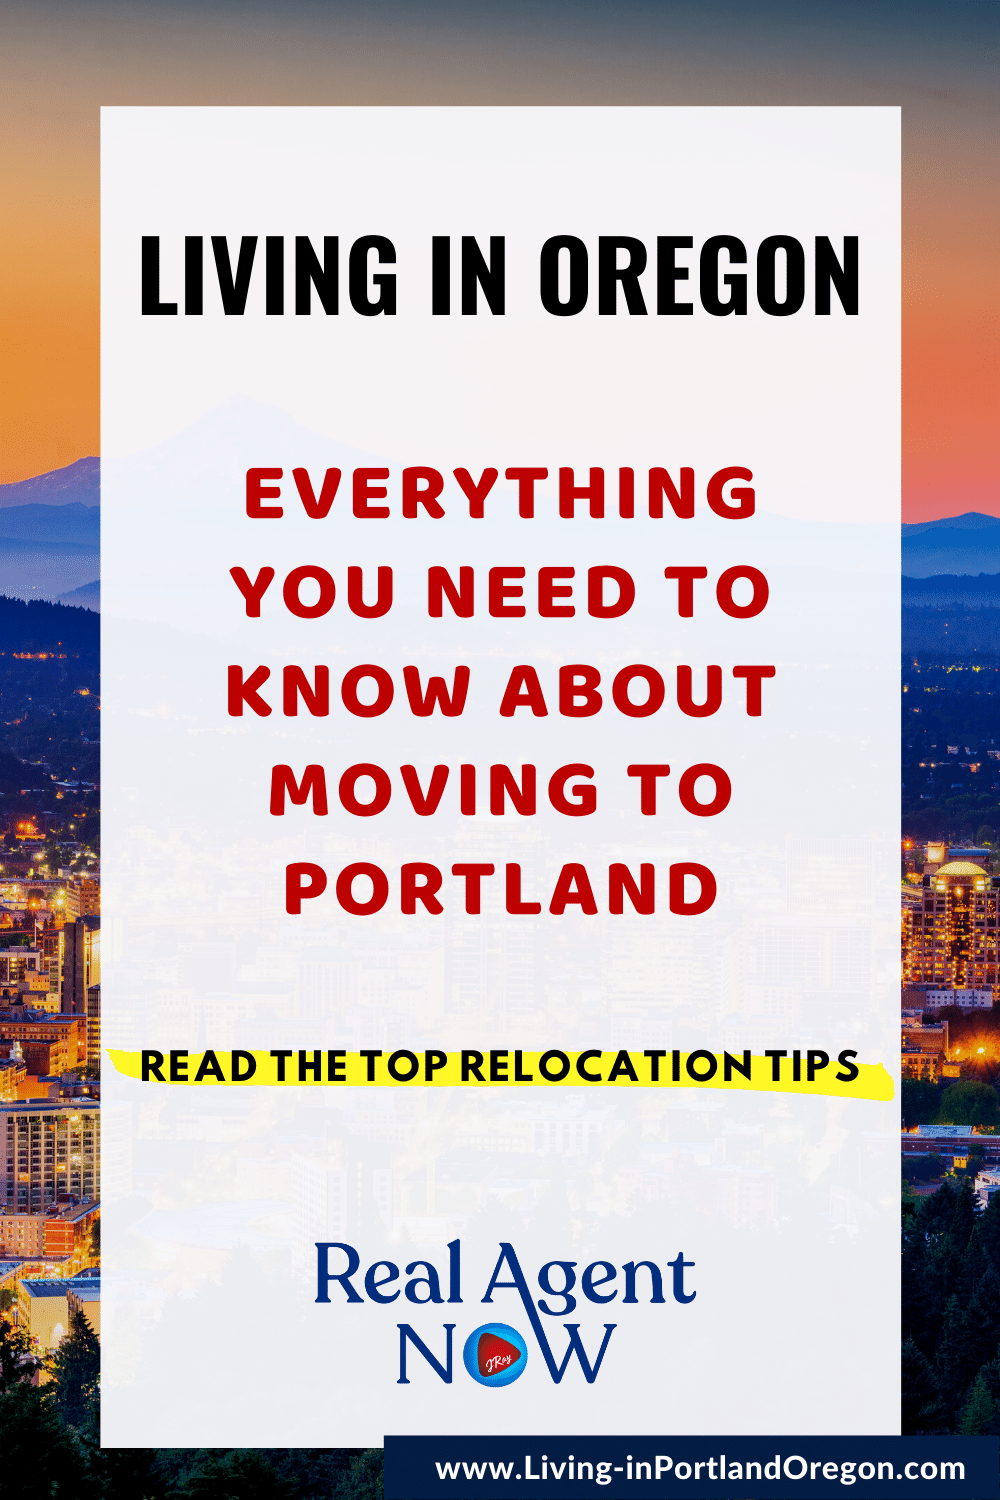 Top 5 Relocation Tips for Moving to Portland Oregon pins (4)